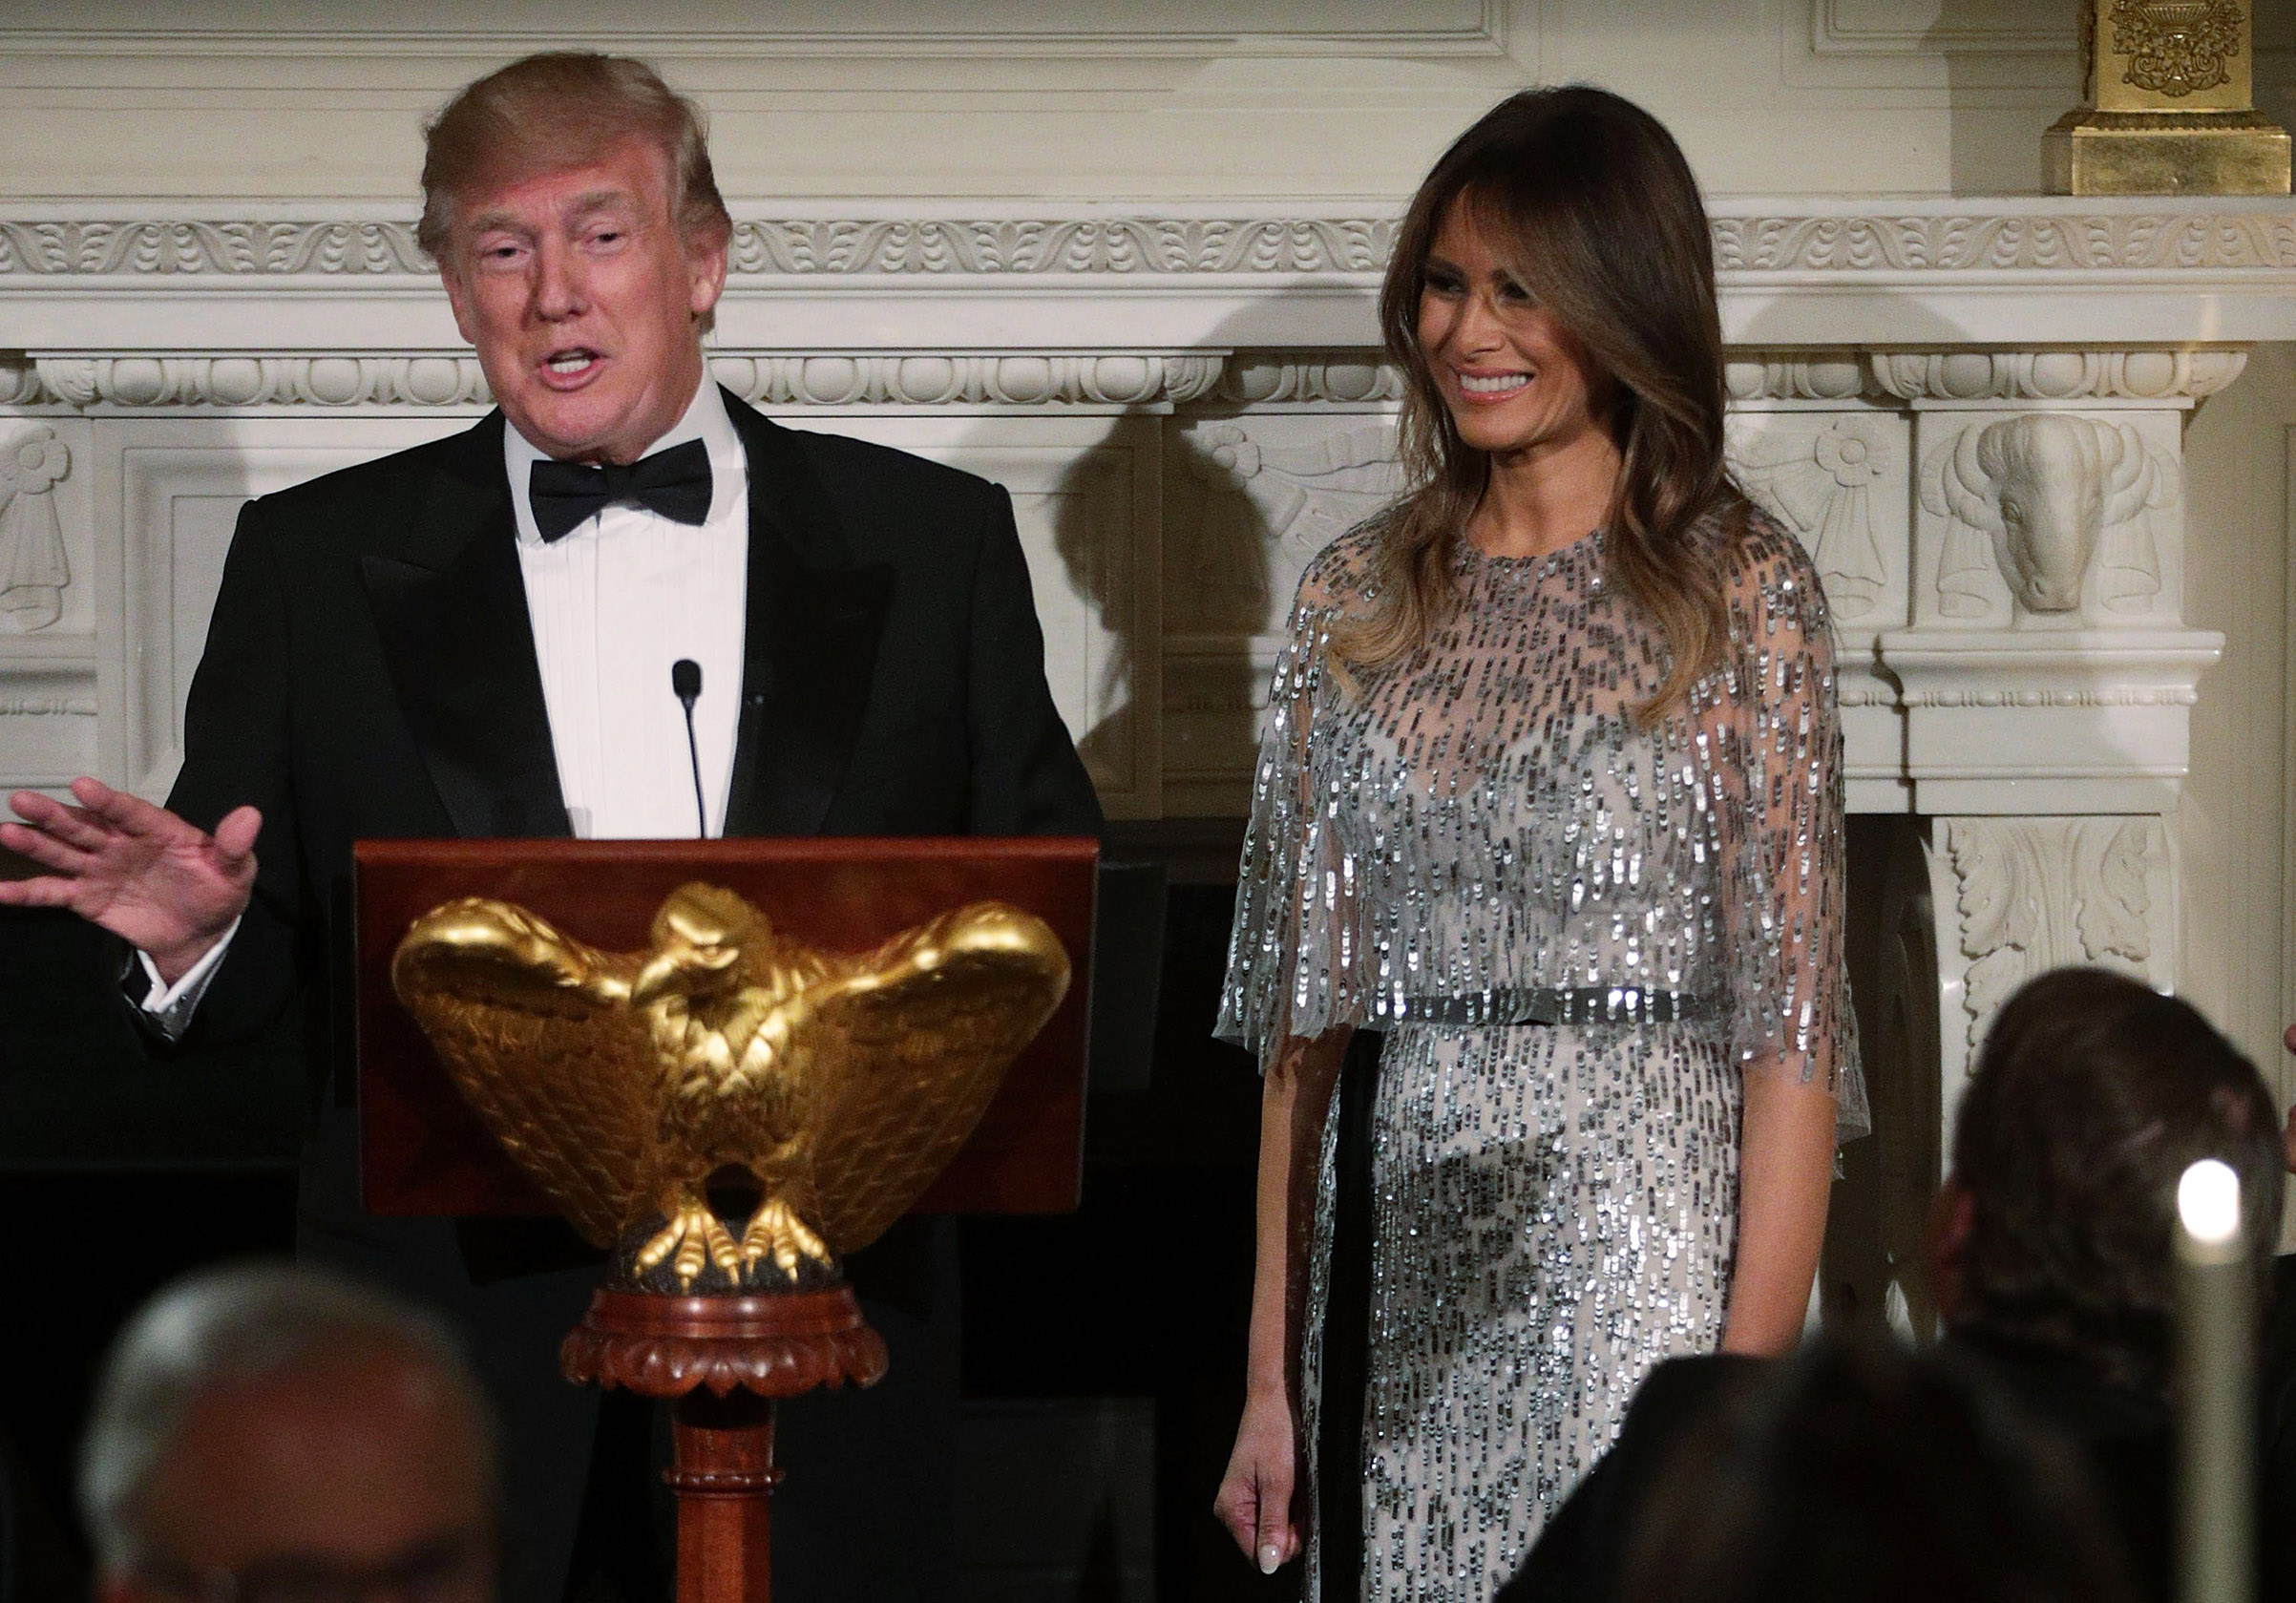 President Donald Trump speaks with  first lady Melania Trump at his side,  wearing a Monique Lhuillier silver dress, during a reception at the State Dining Room of the White House Sept.14, 2017, in Washington, D.C.